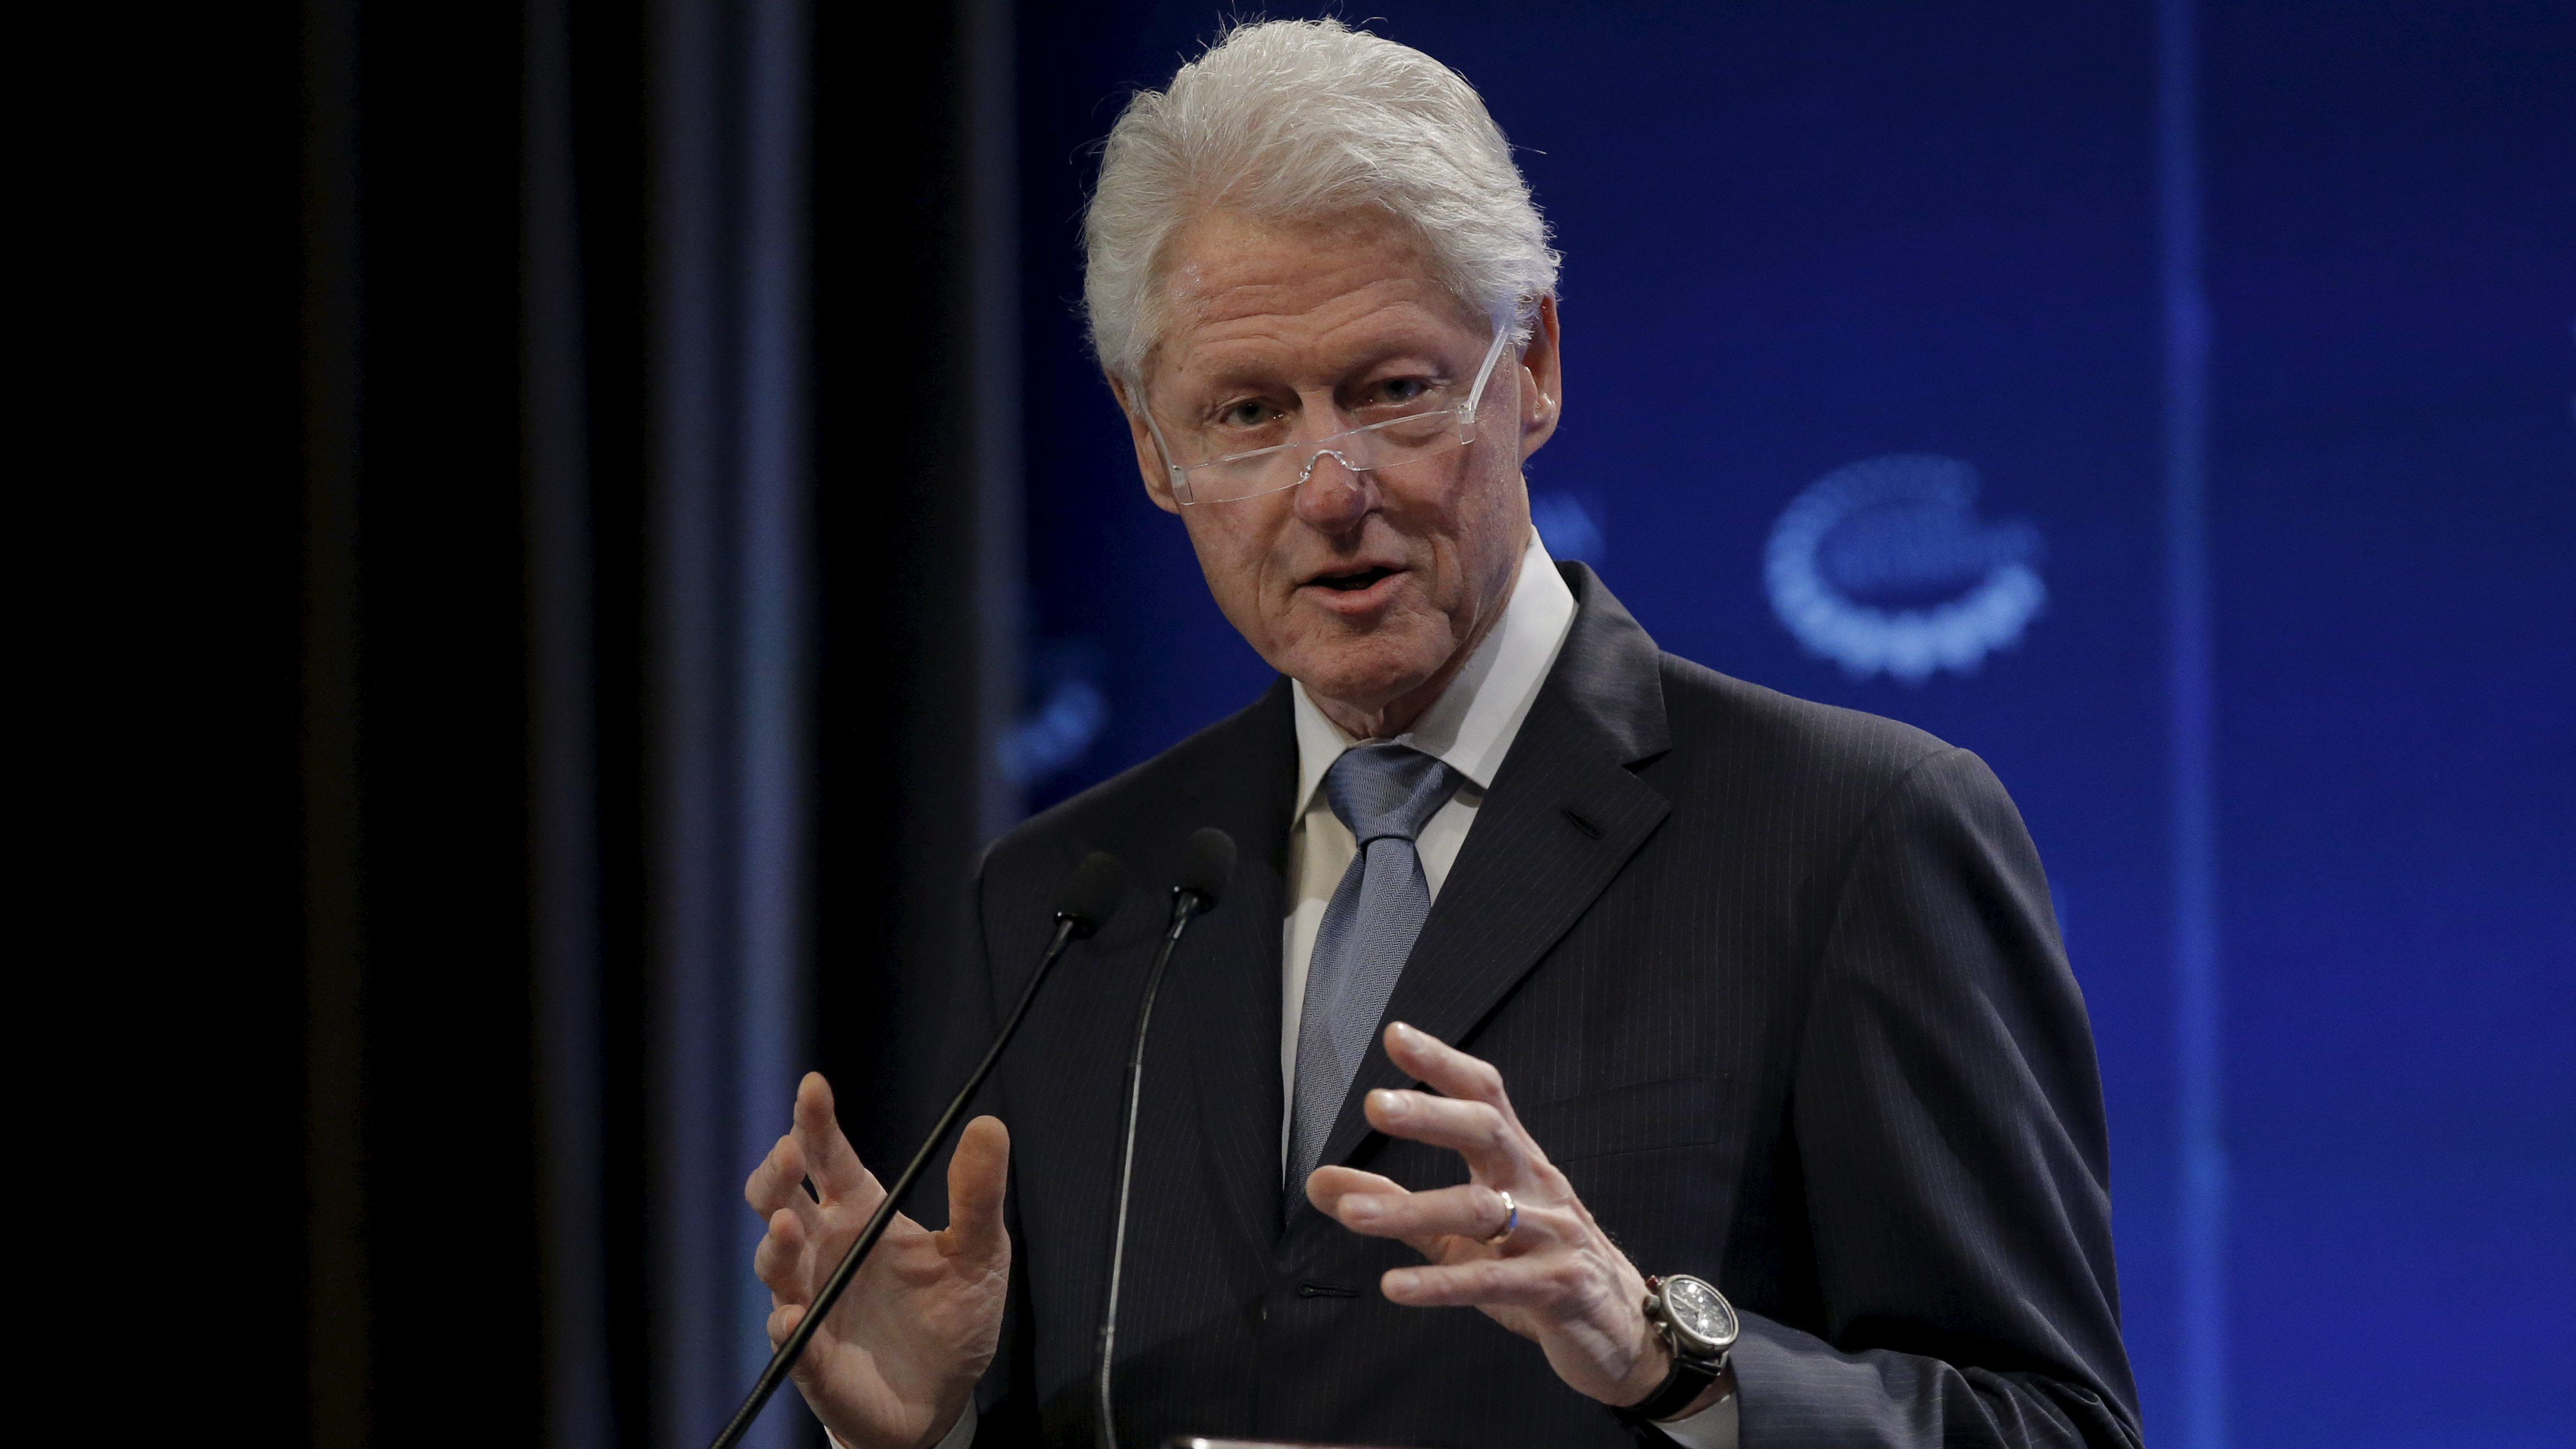 Former U.S. President Bill Clinton speaks during the Clinton Global Initiative's winter meeting in New York, February 4, 2016.